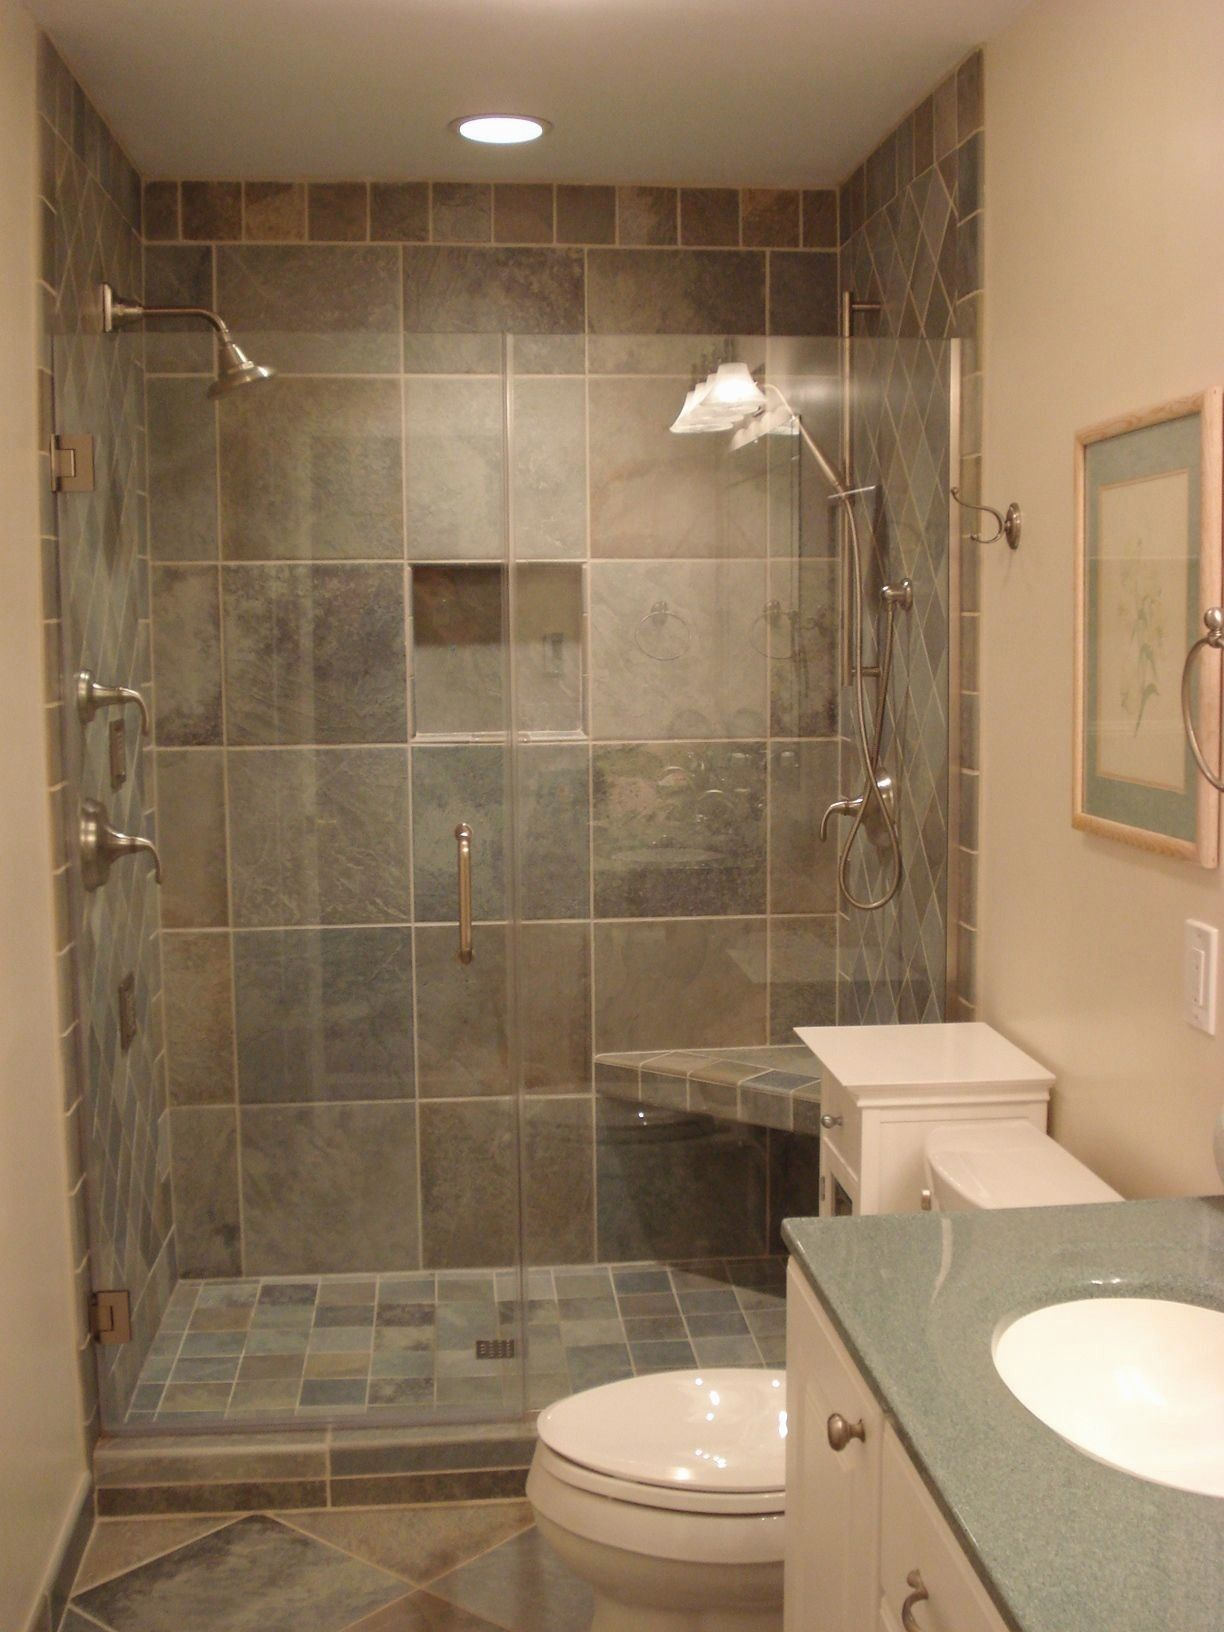 50 Images How Much Does Bathroom Remodel Cost Small Bathroom